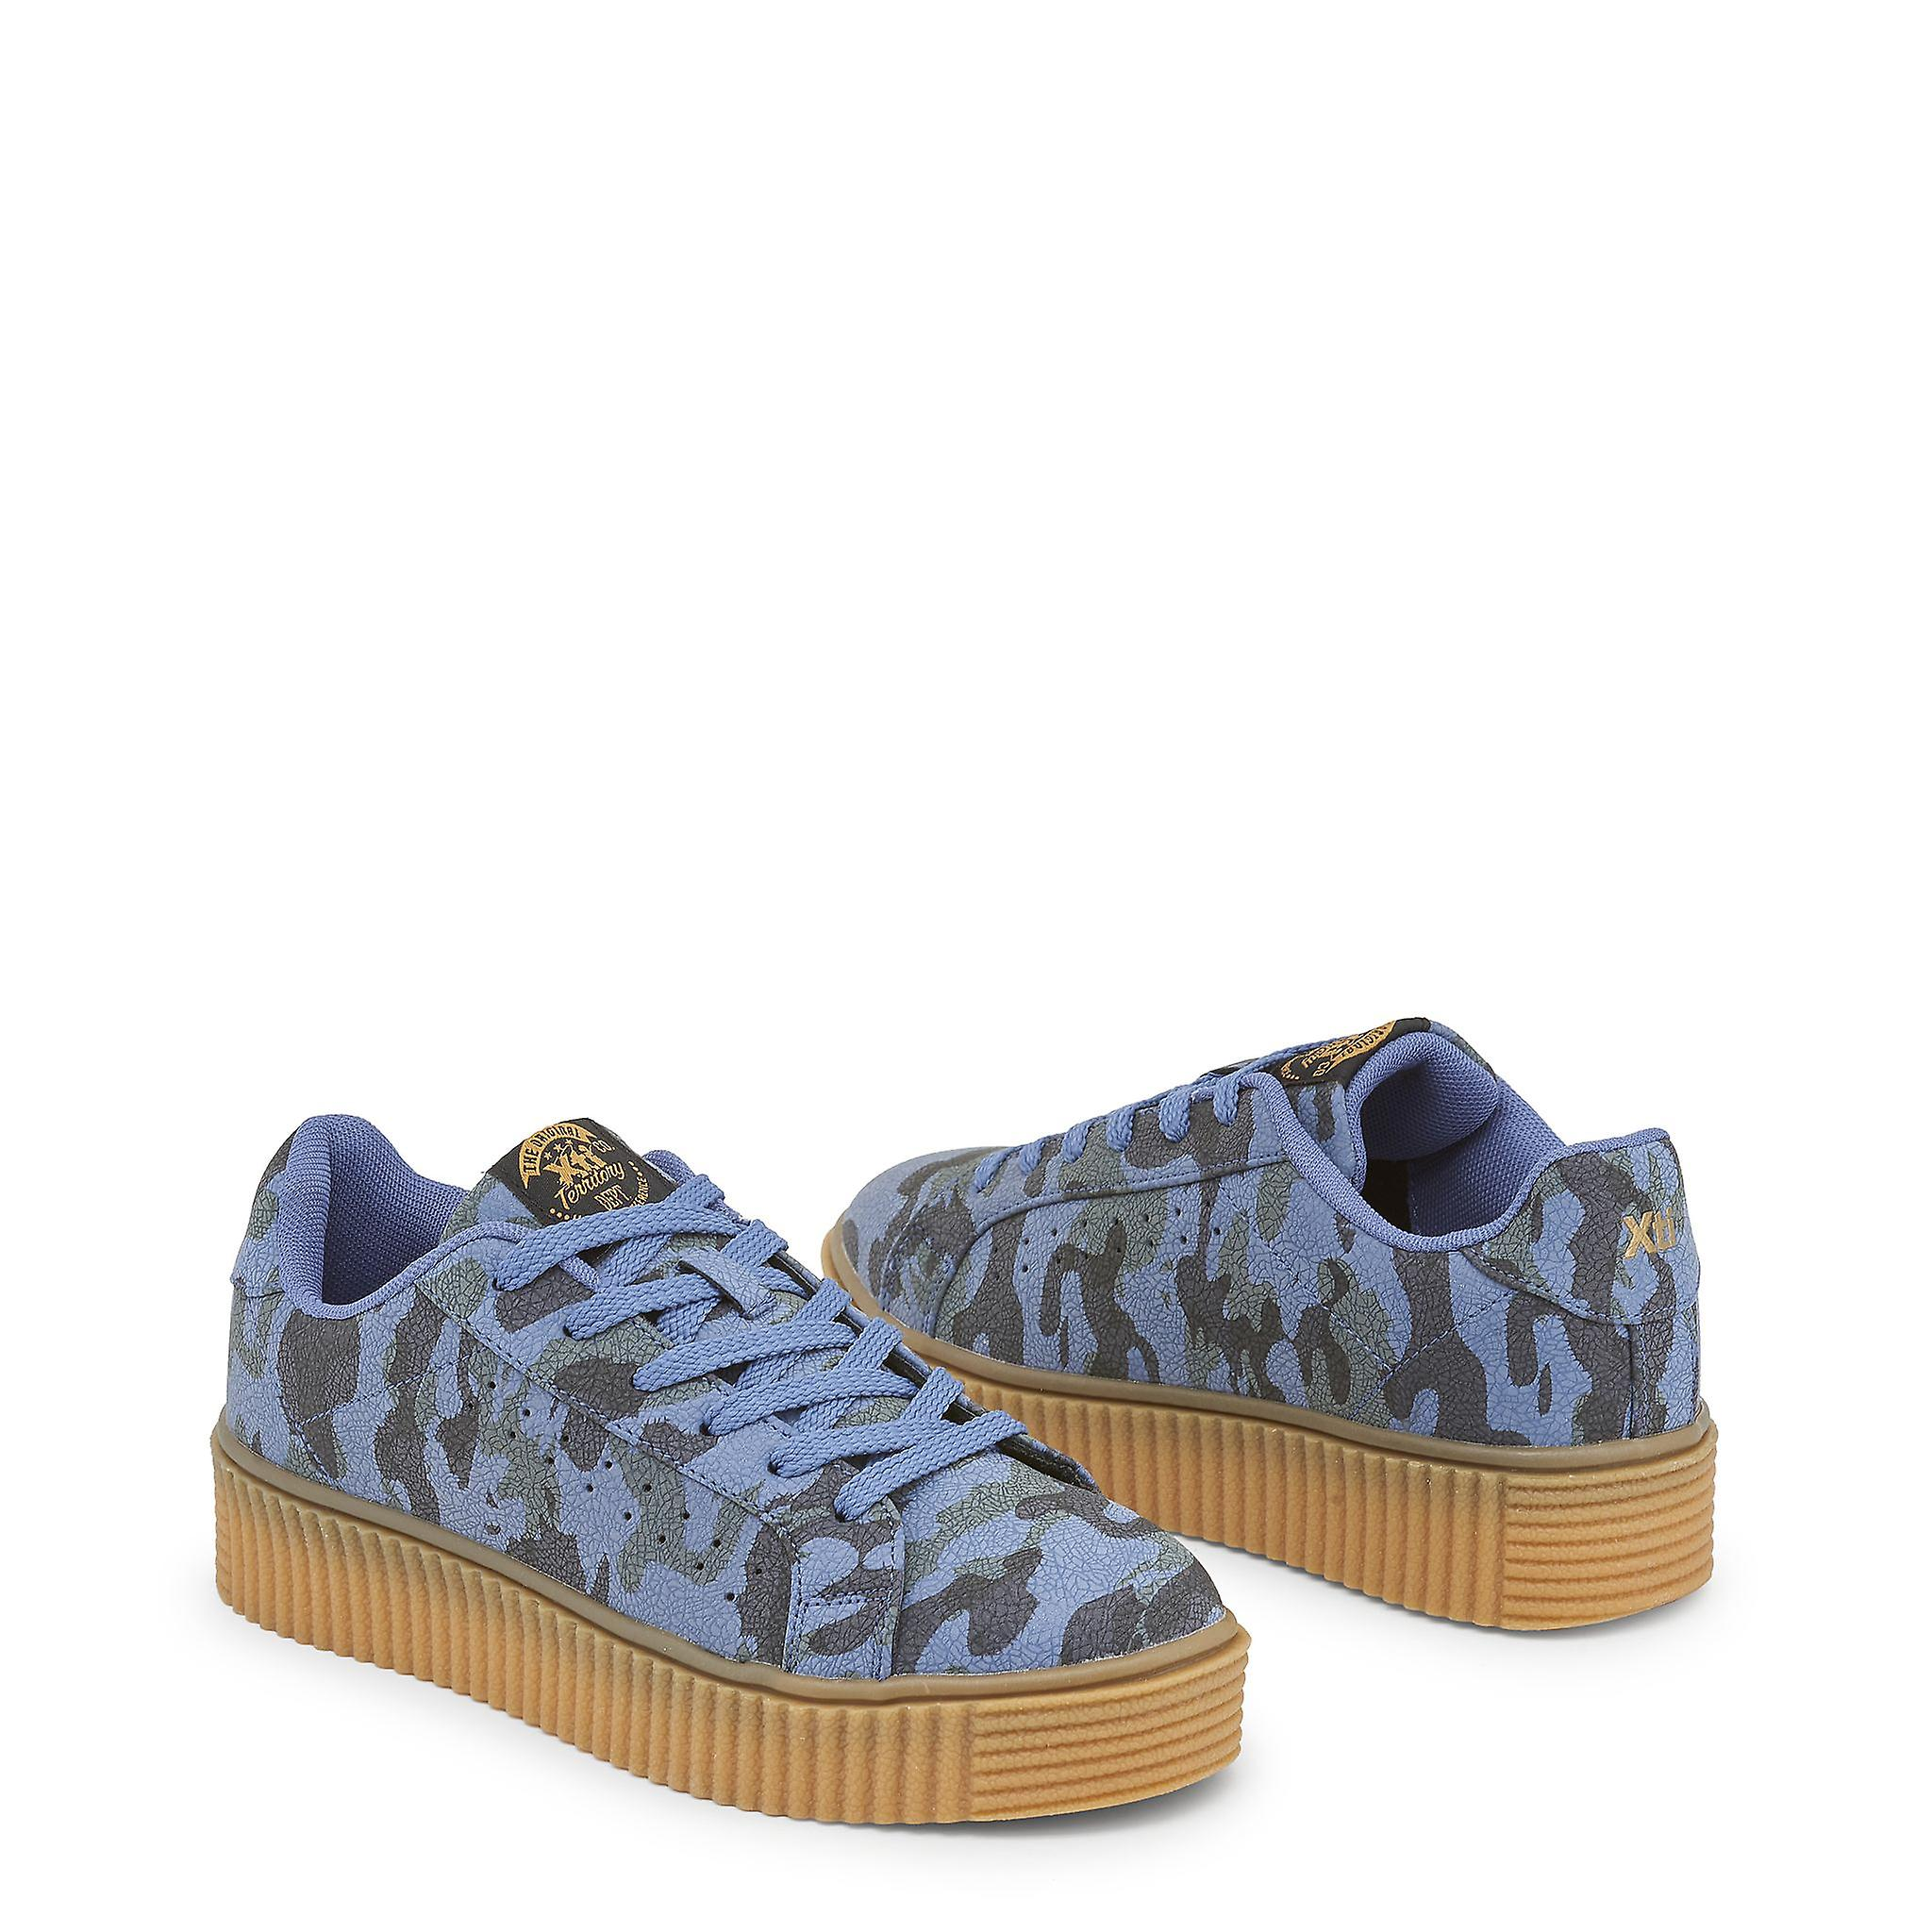 XTI - 46363 Women's Sneakers Shoe